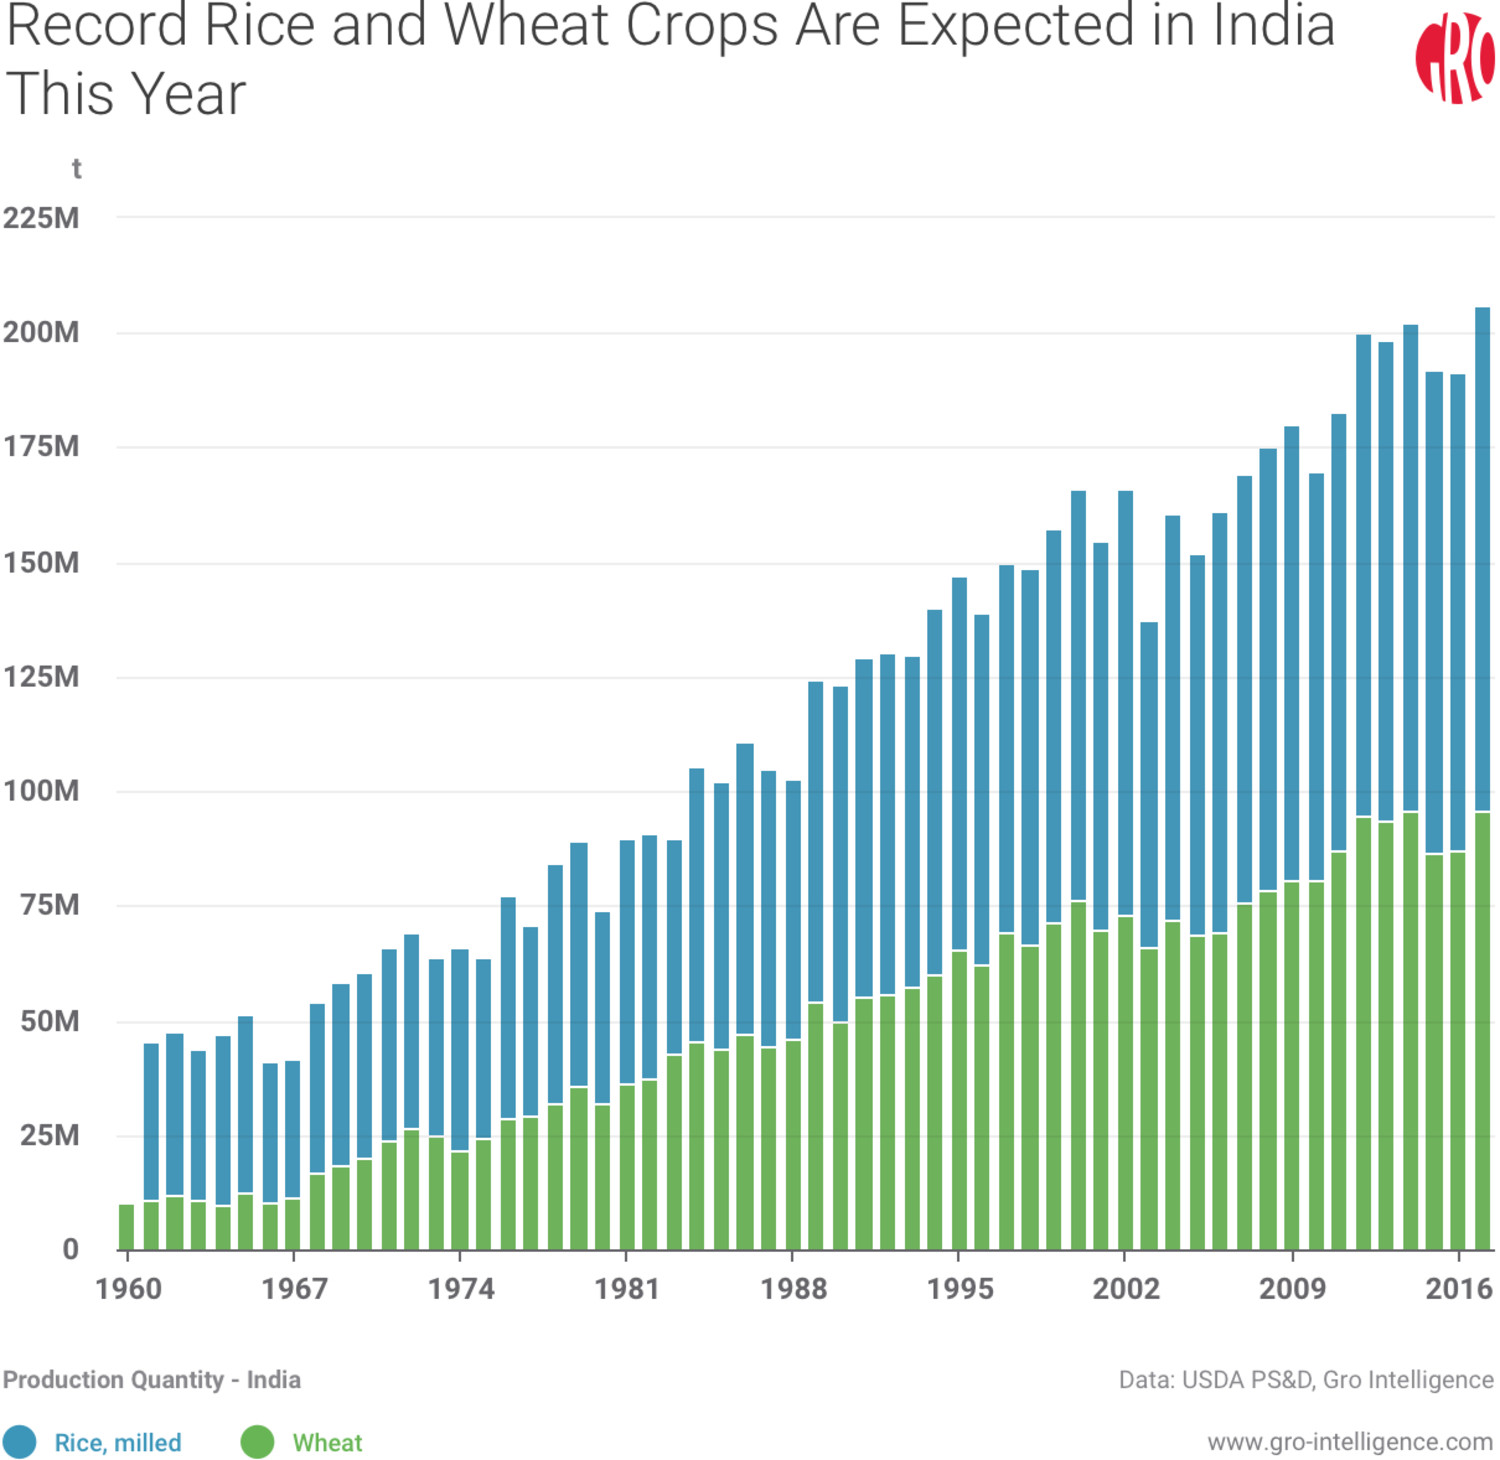 Record Rice and Wheat Crops Are Expected in India this Year